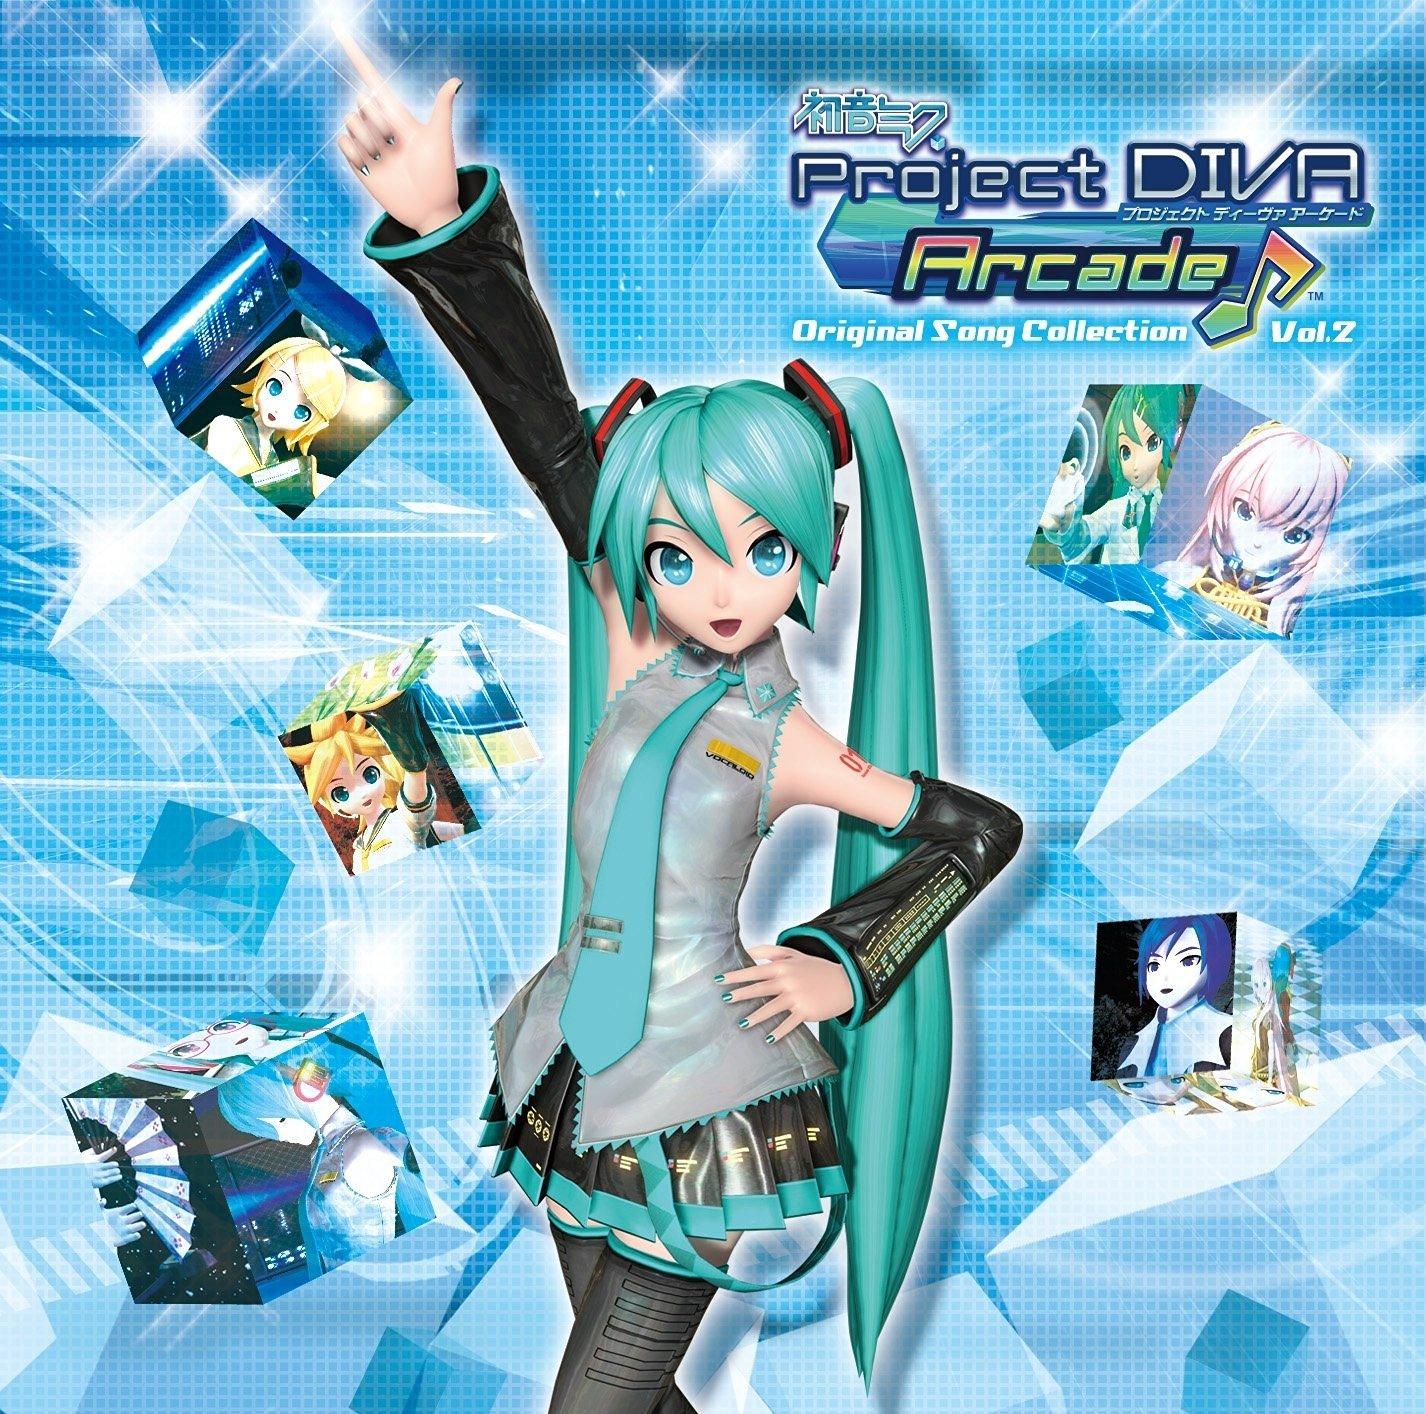 Diva 1 2 3 Unique Collection 初音ミク Project Diva Arcade original song Collection Vol 2